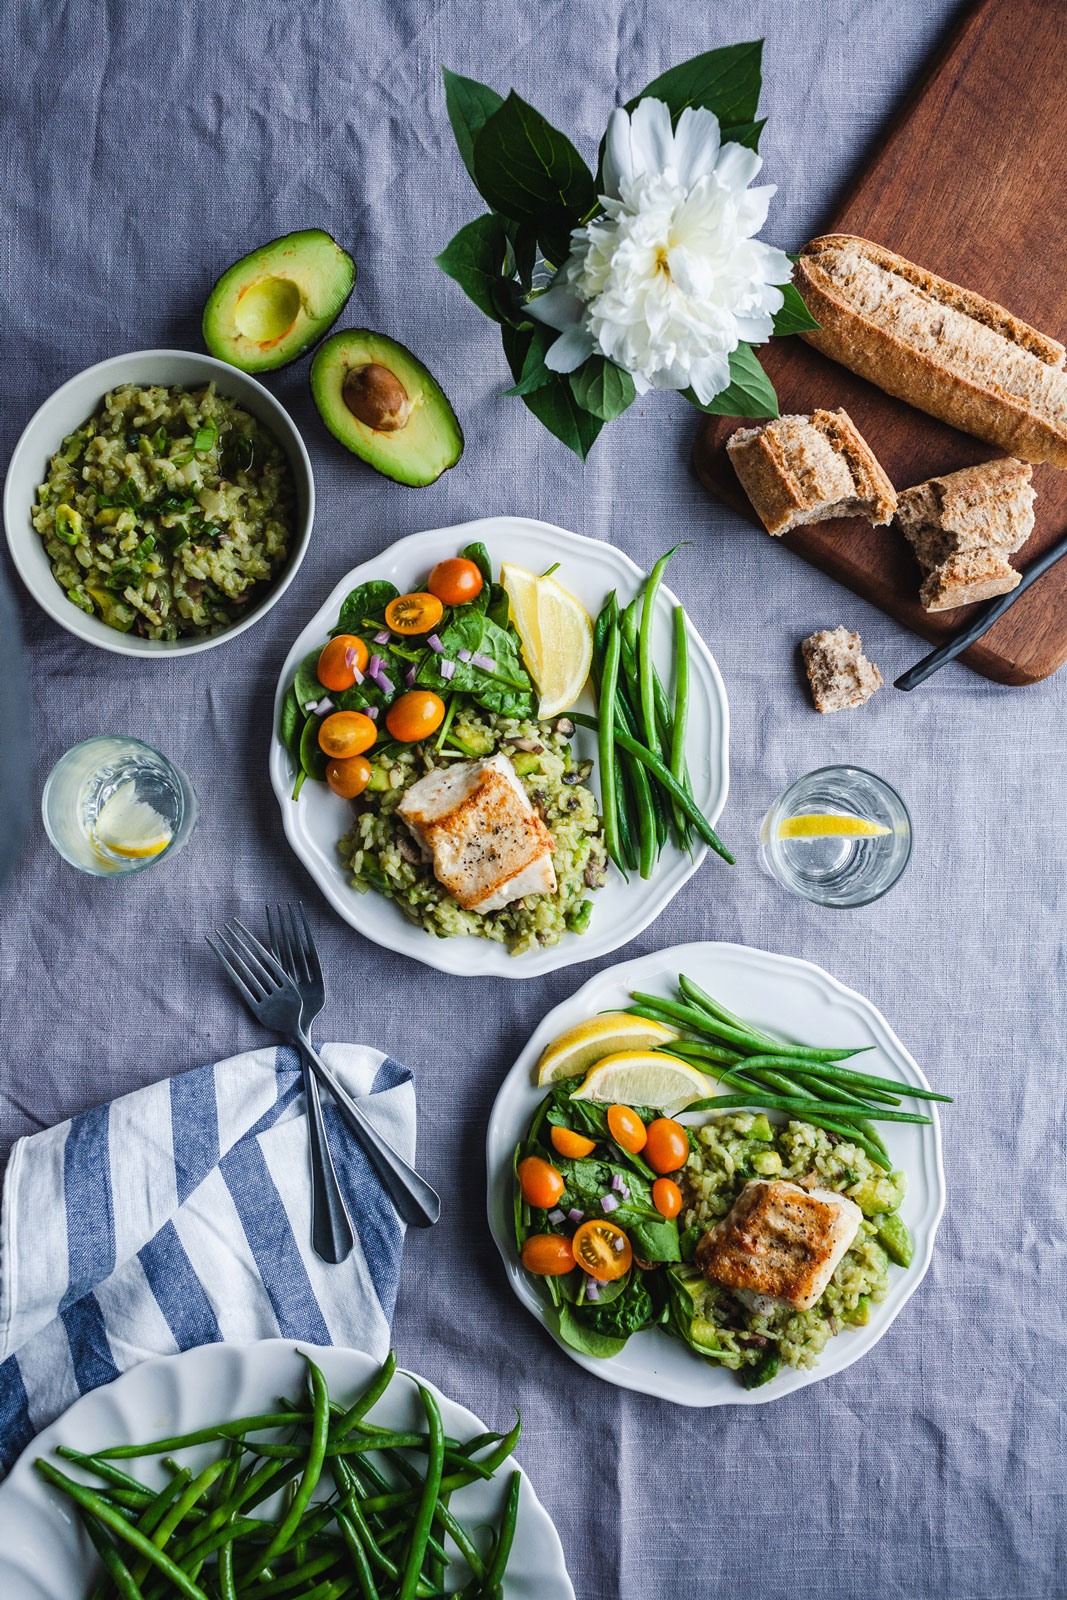 Lemon Pan-Seared Halibut With Avocado Risotto